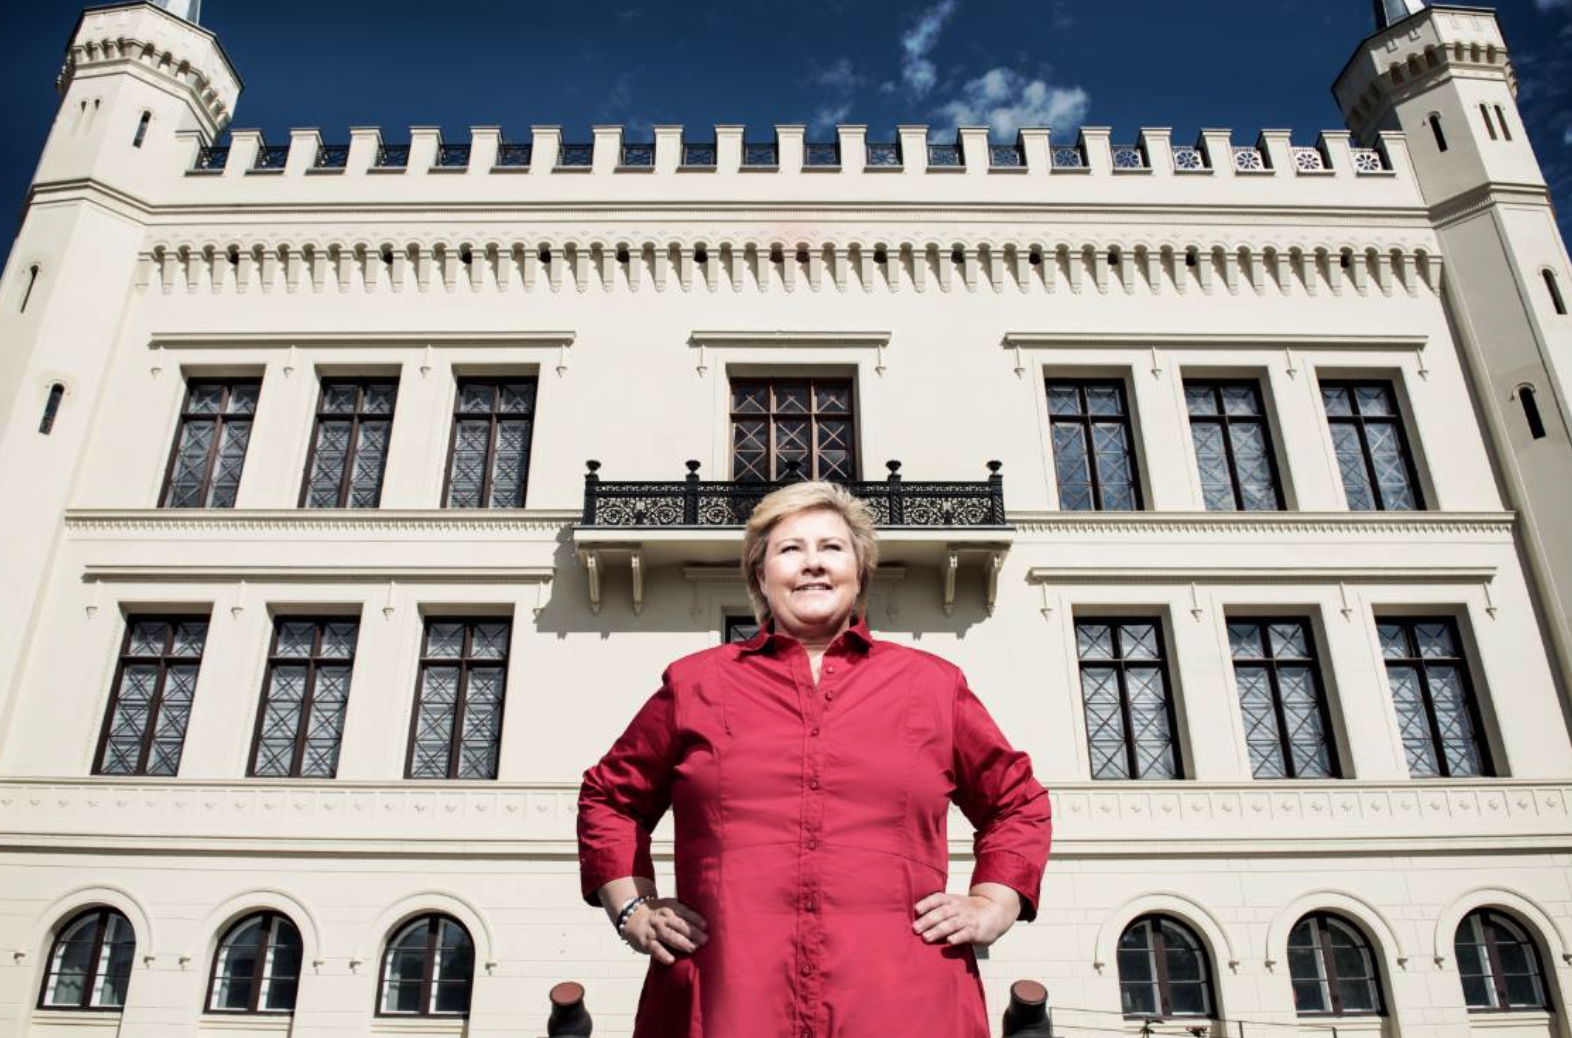 The Prime Minister of Norway - Erna Solberg